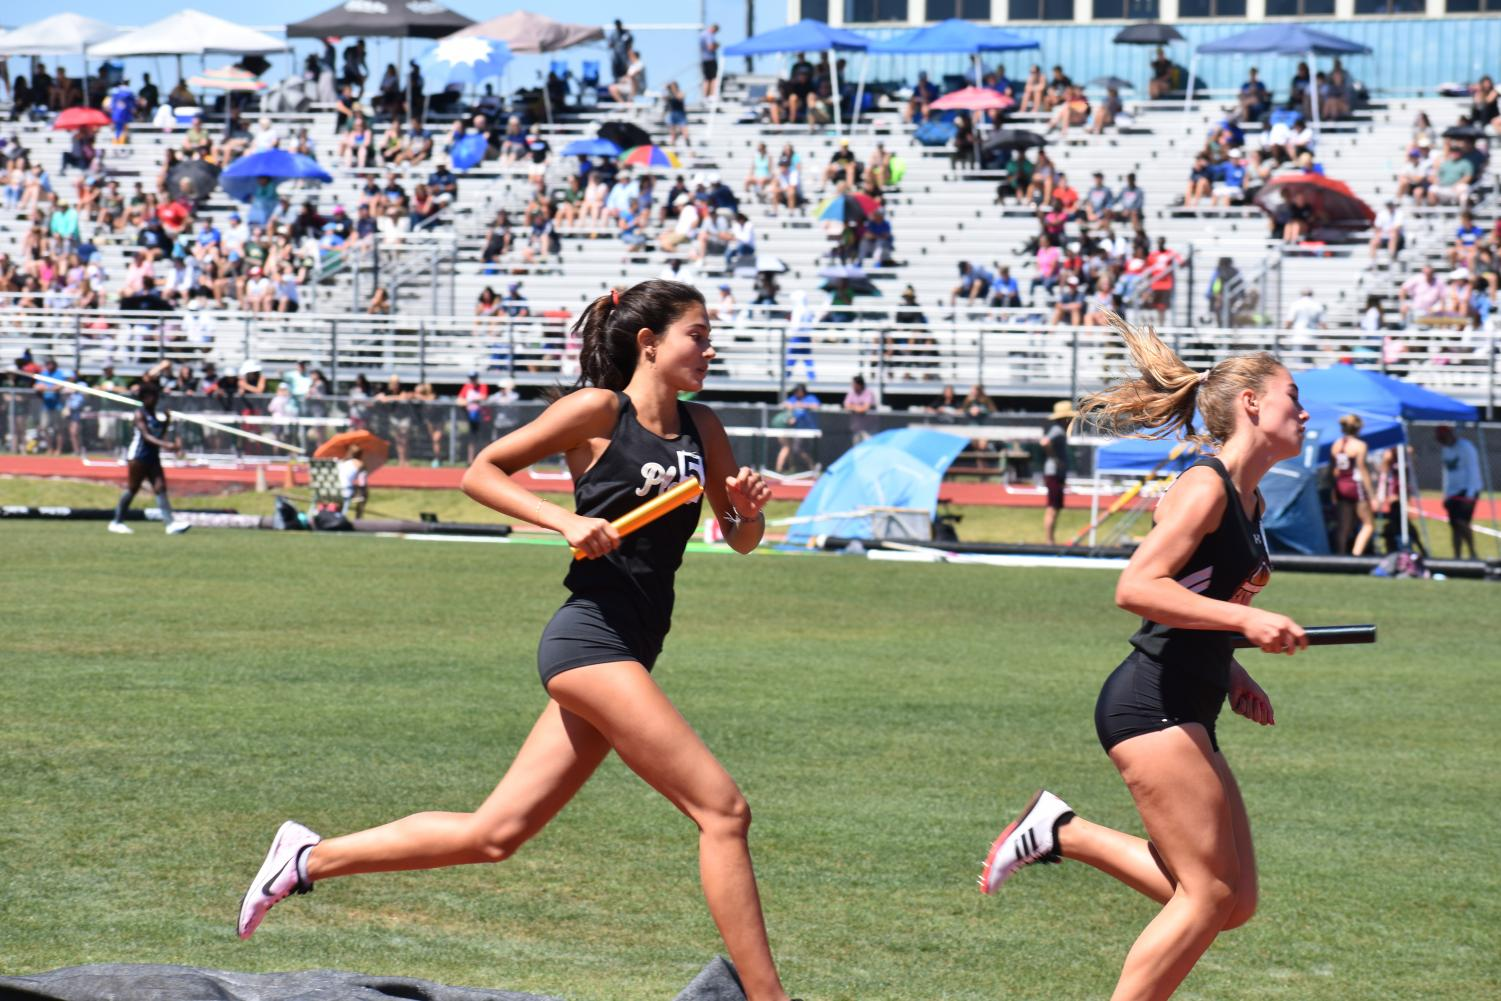 Grasping+the+baton%2C+freshman+Arlie+Rubin+catches+up+to+a+runner+April+27+at+George+Jenkins+High+School.+Rubin+raced+the+third+leg+of+the+4x800+and+qualified+for+states+in+the+1600-meter+later+in+the+day.+